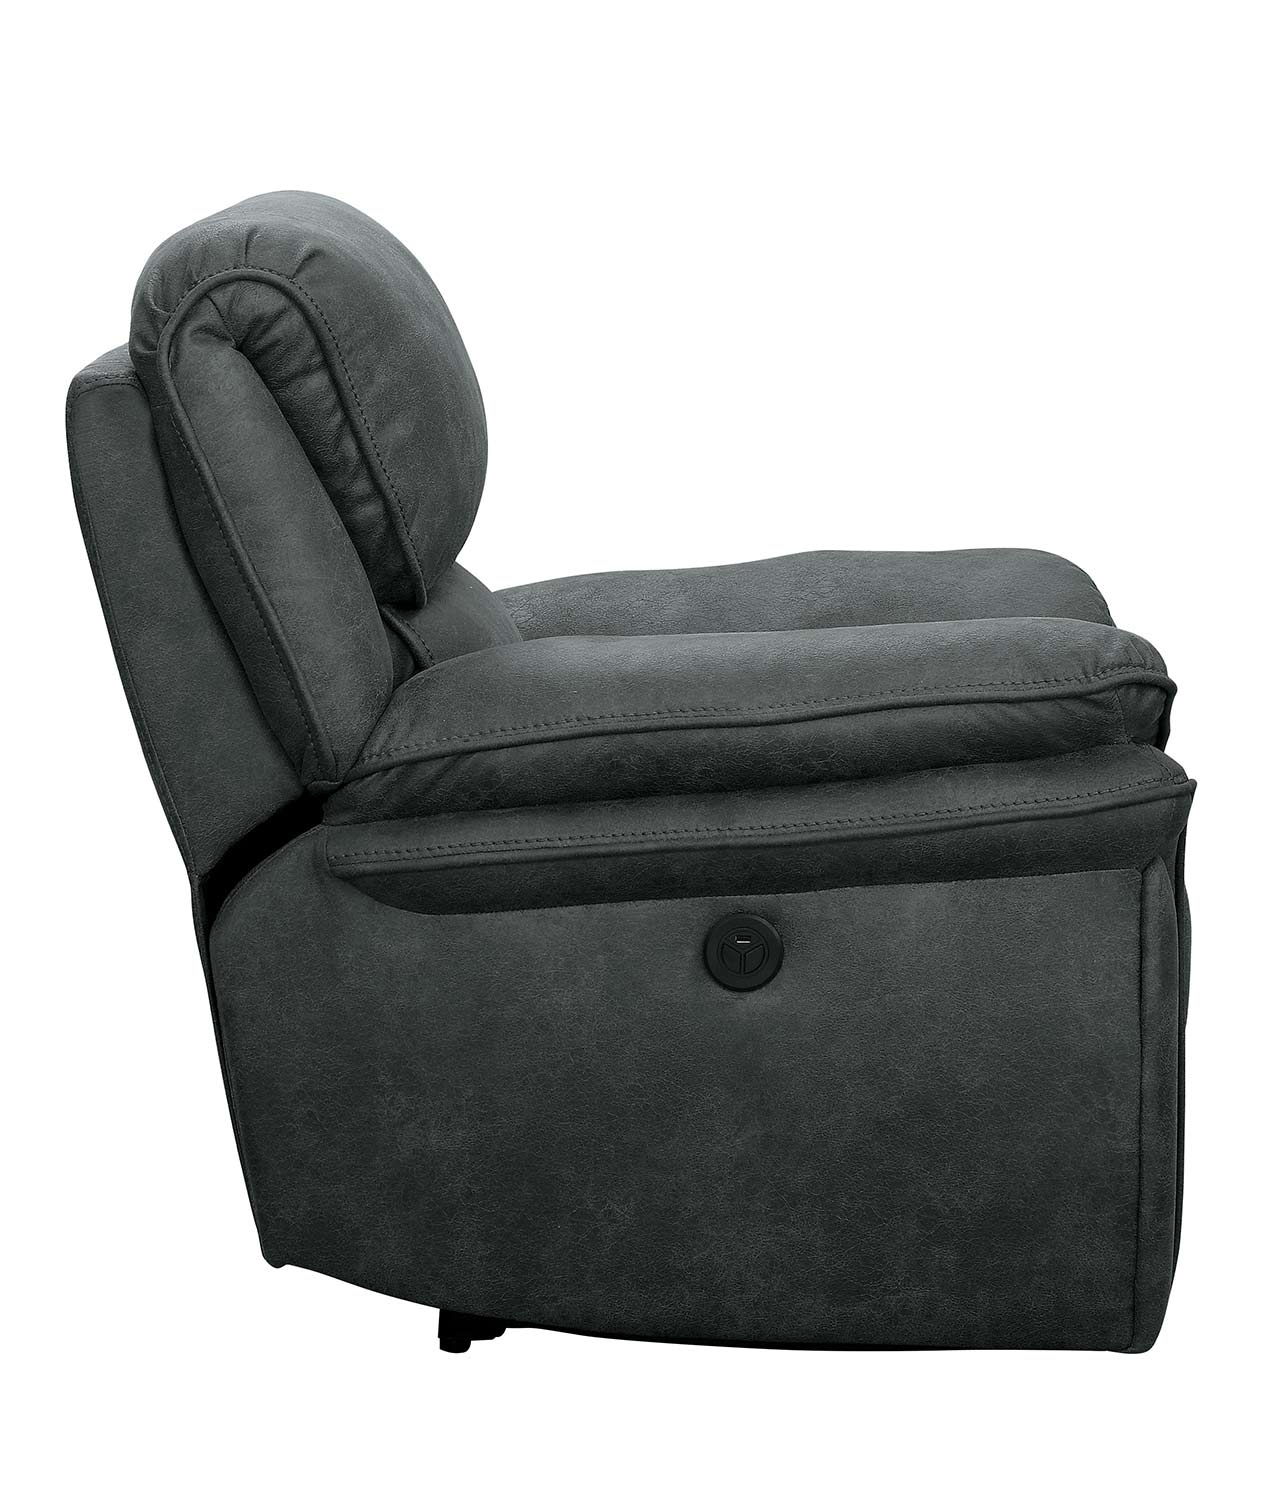 Homelegance Hadden Power Reclining Chair - Gray